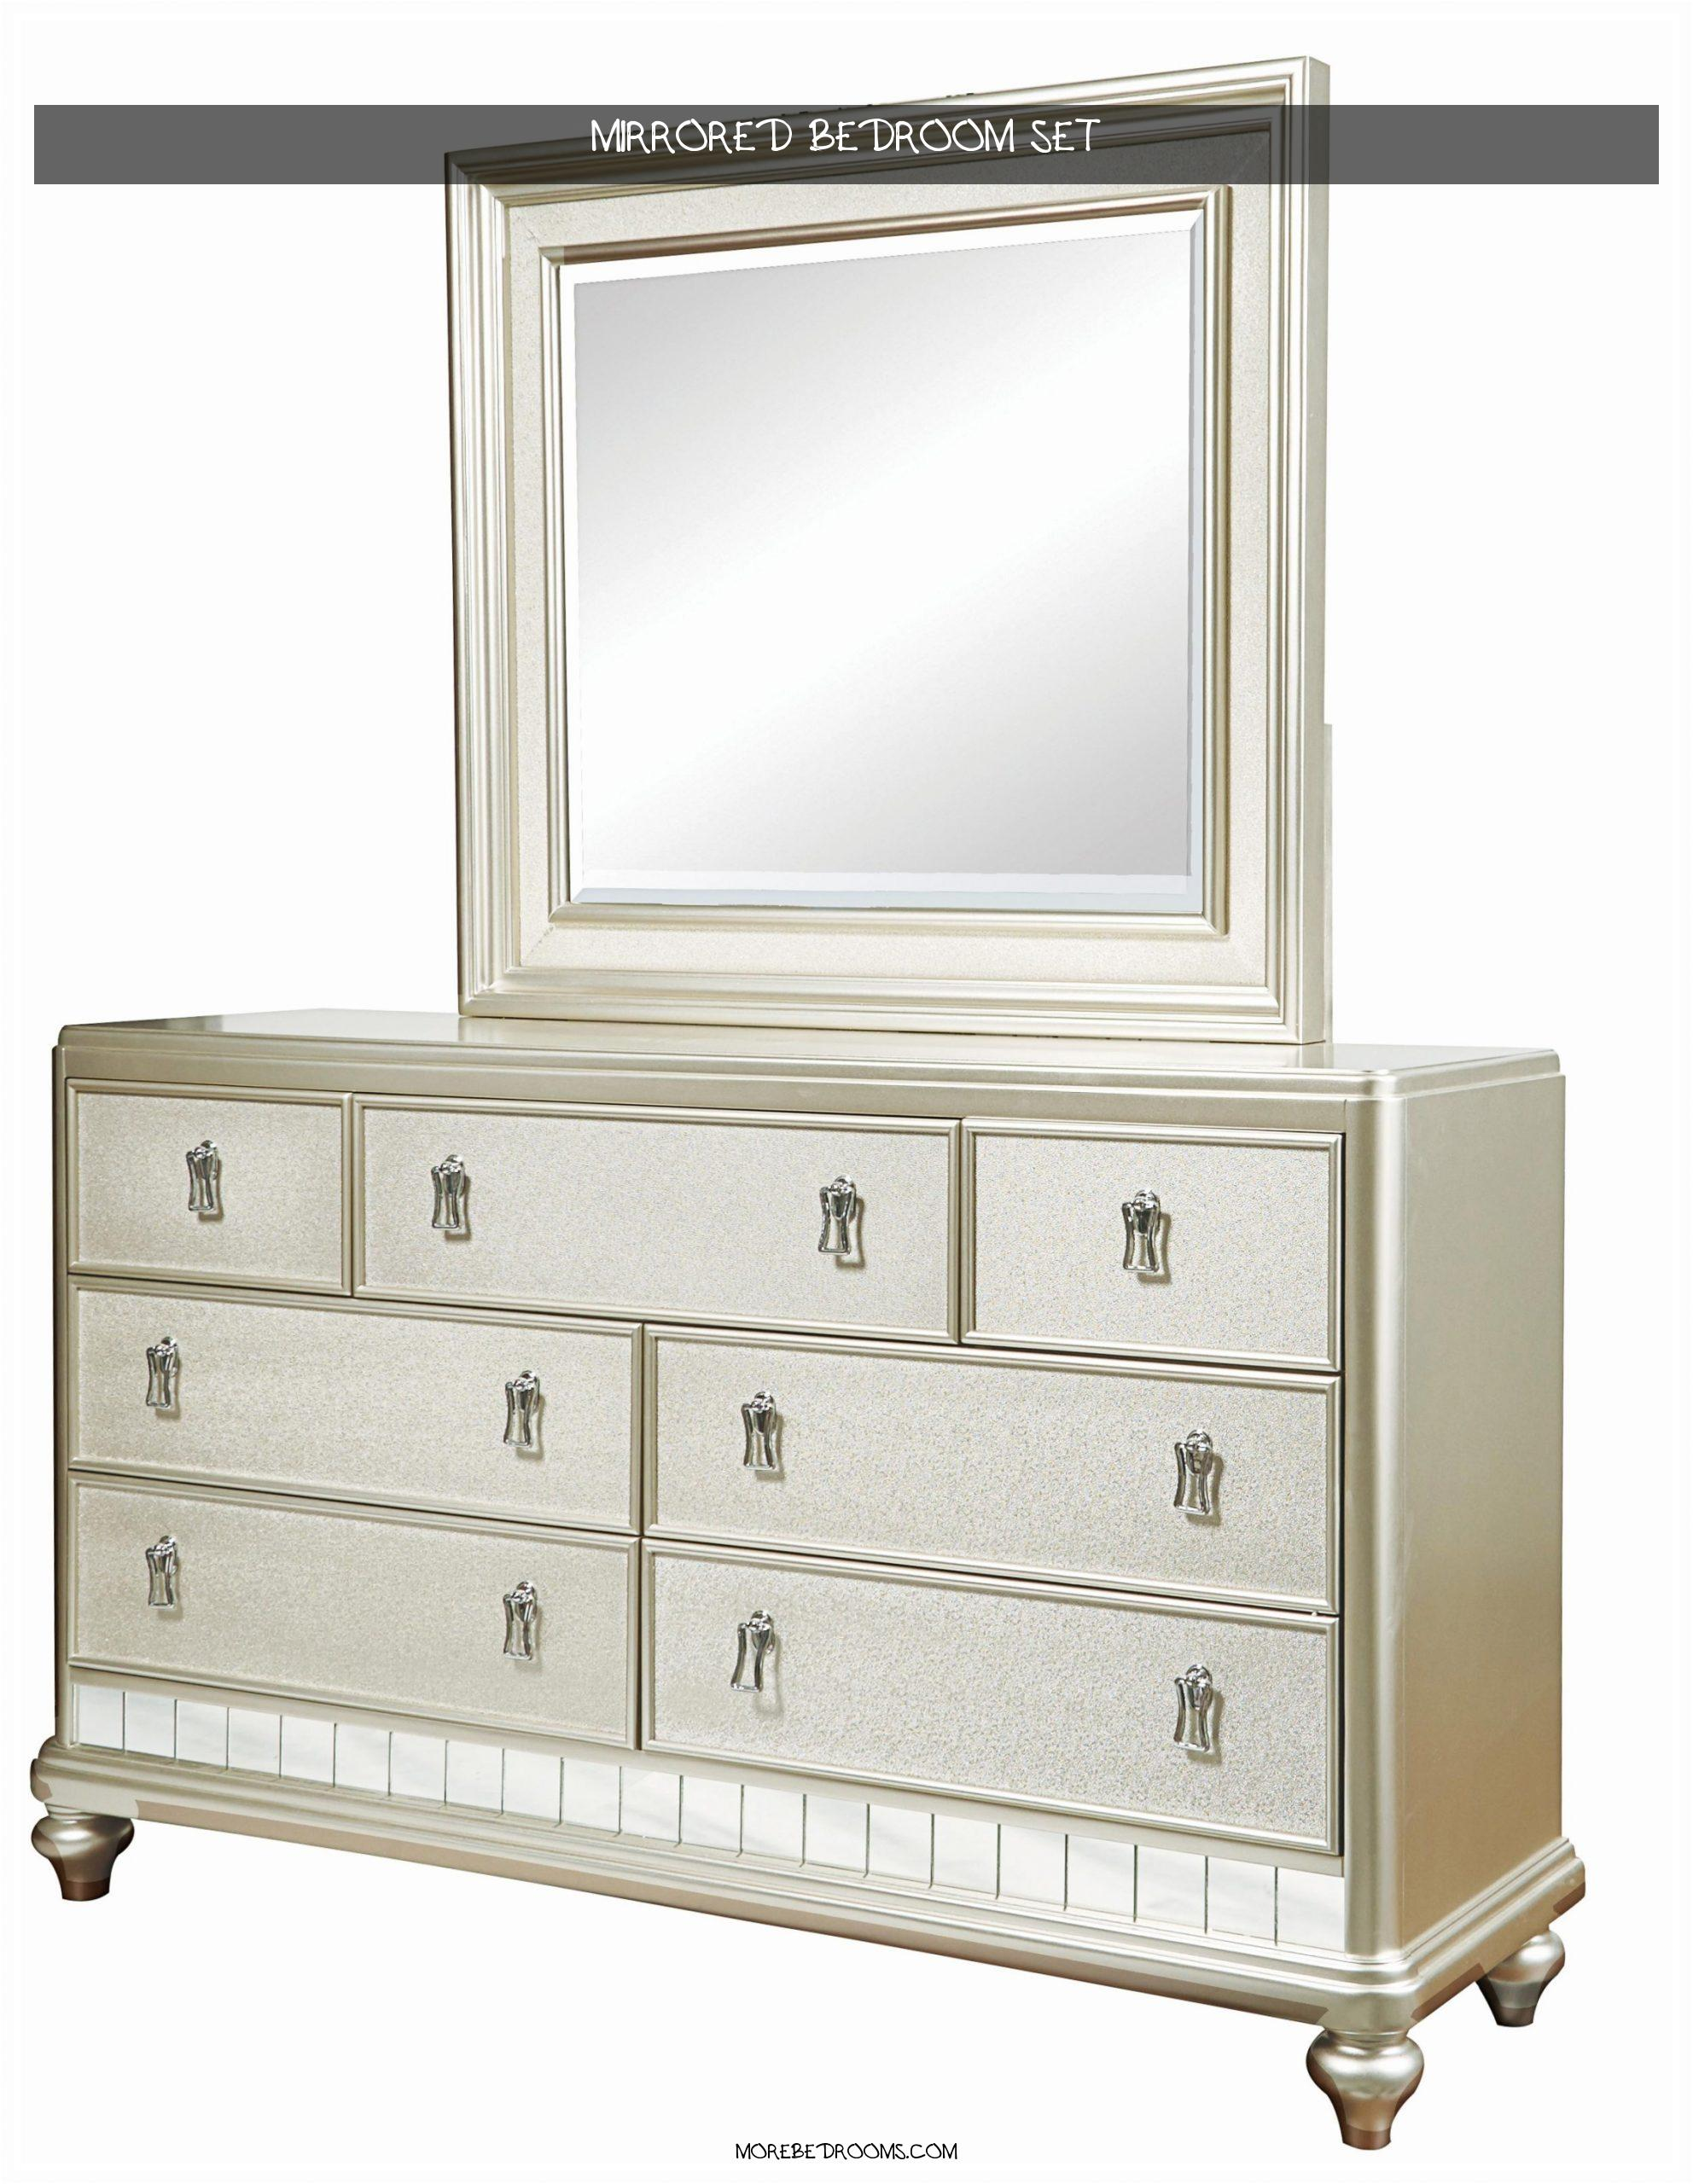 Mirrored Bedroom Set Cyqhas Lovely Diva Dresser & Mirror Set19842560set0